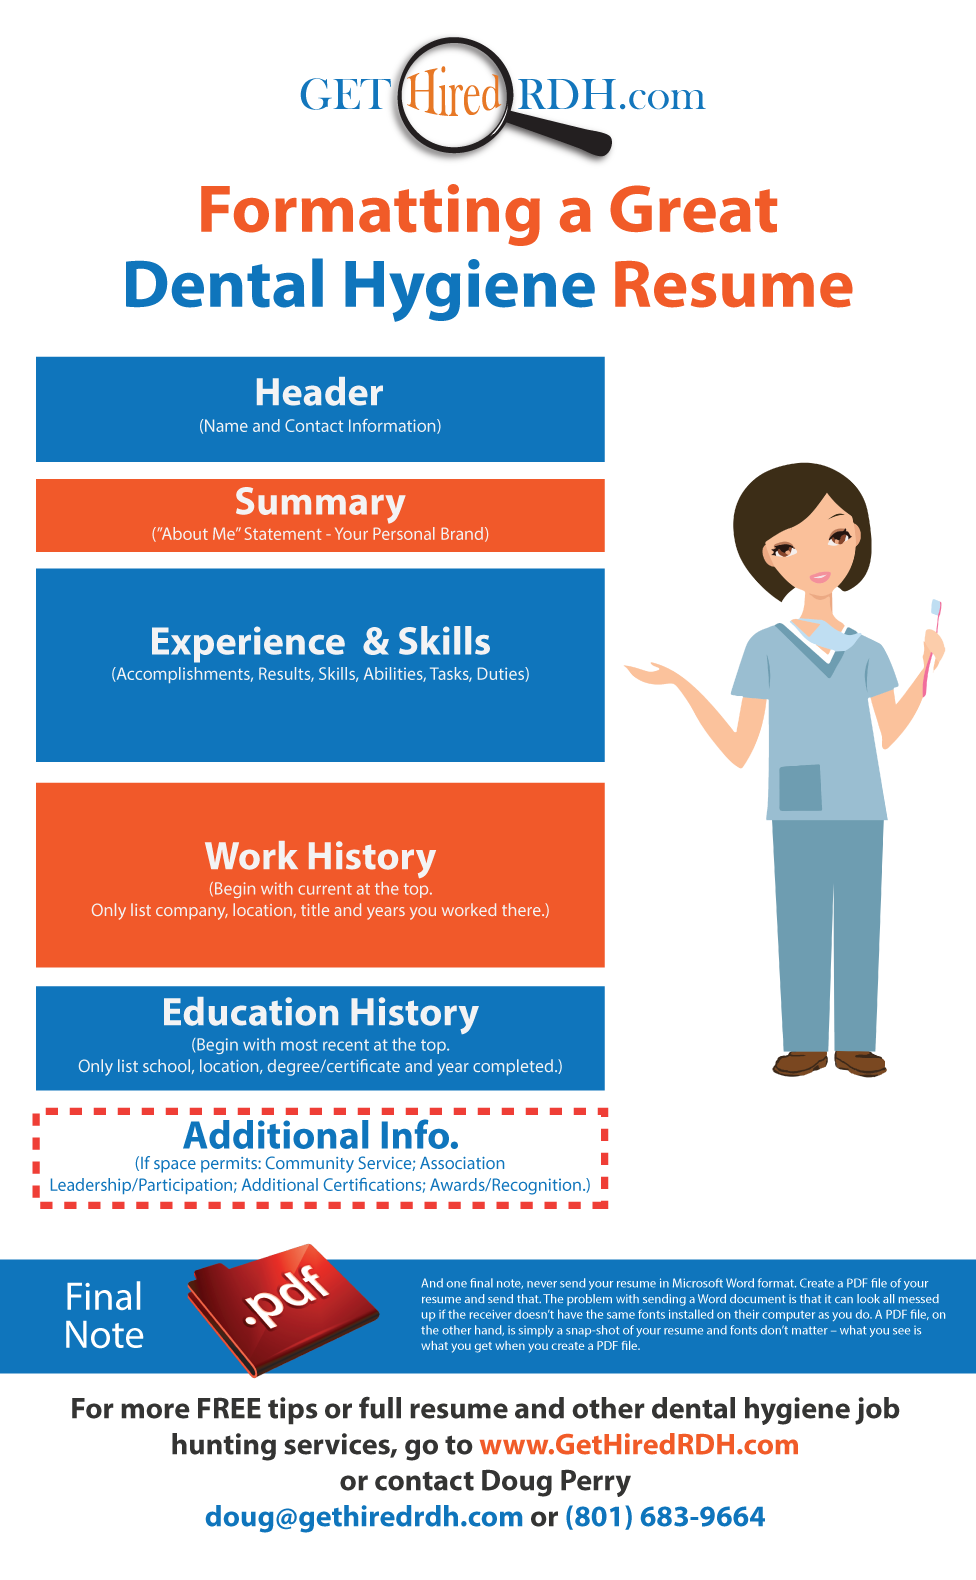 Dental Hygiene Resume Template Building A Great Dental Hygiene Resume  Dental Hygiene Dental